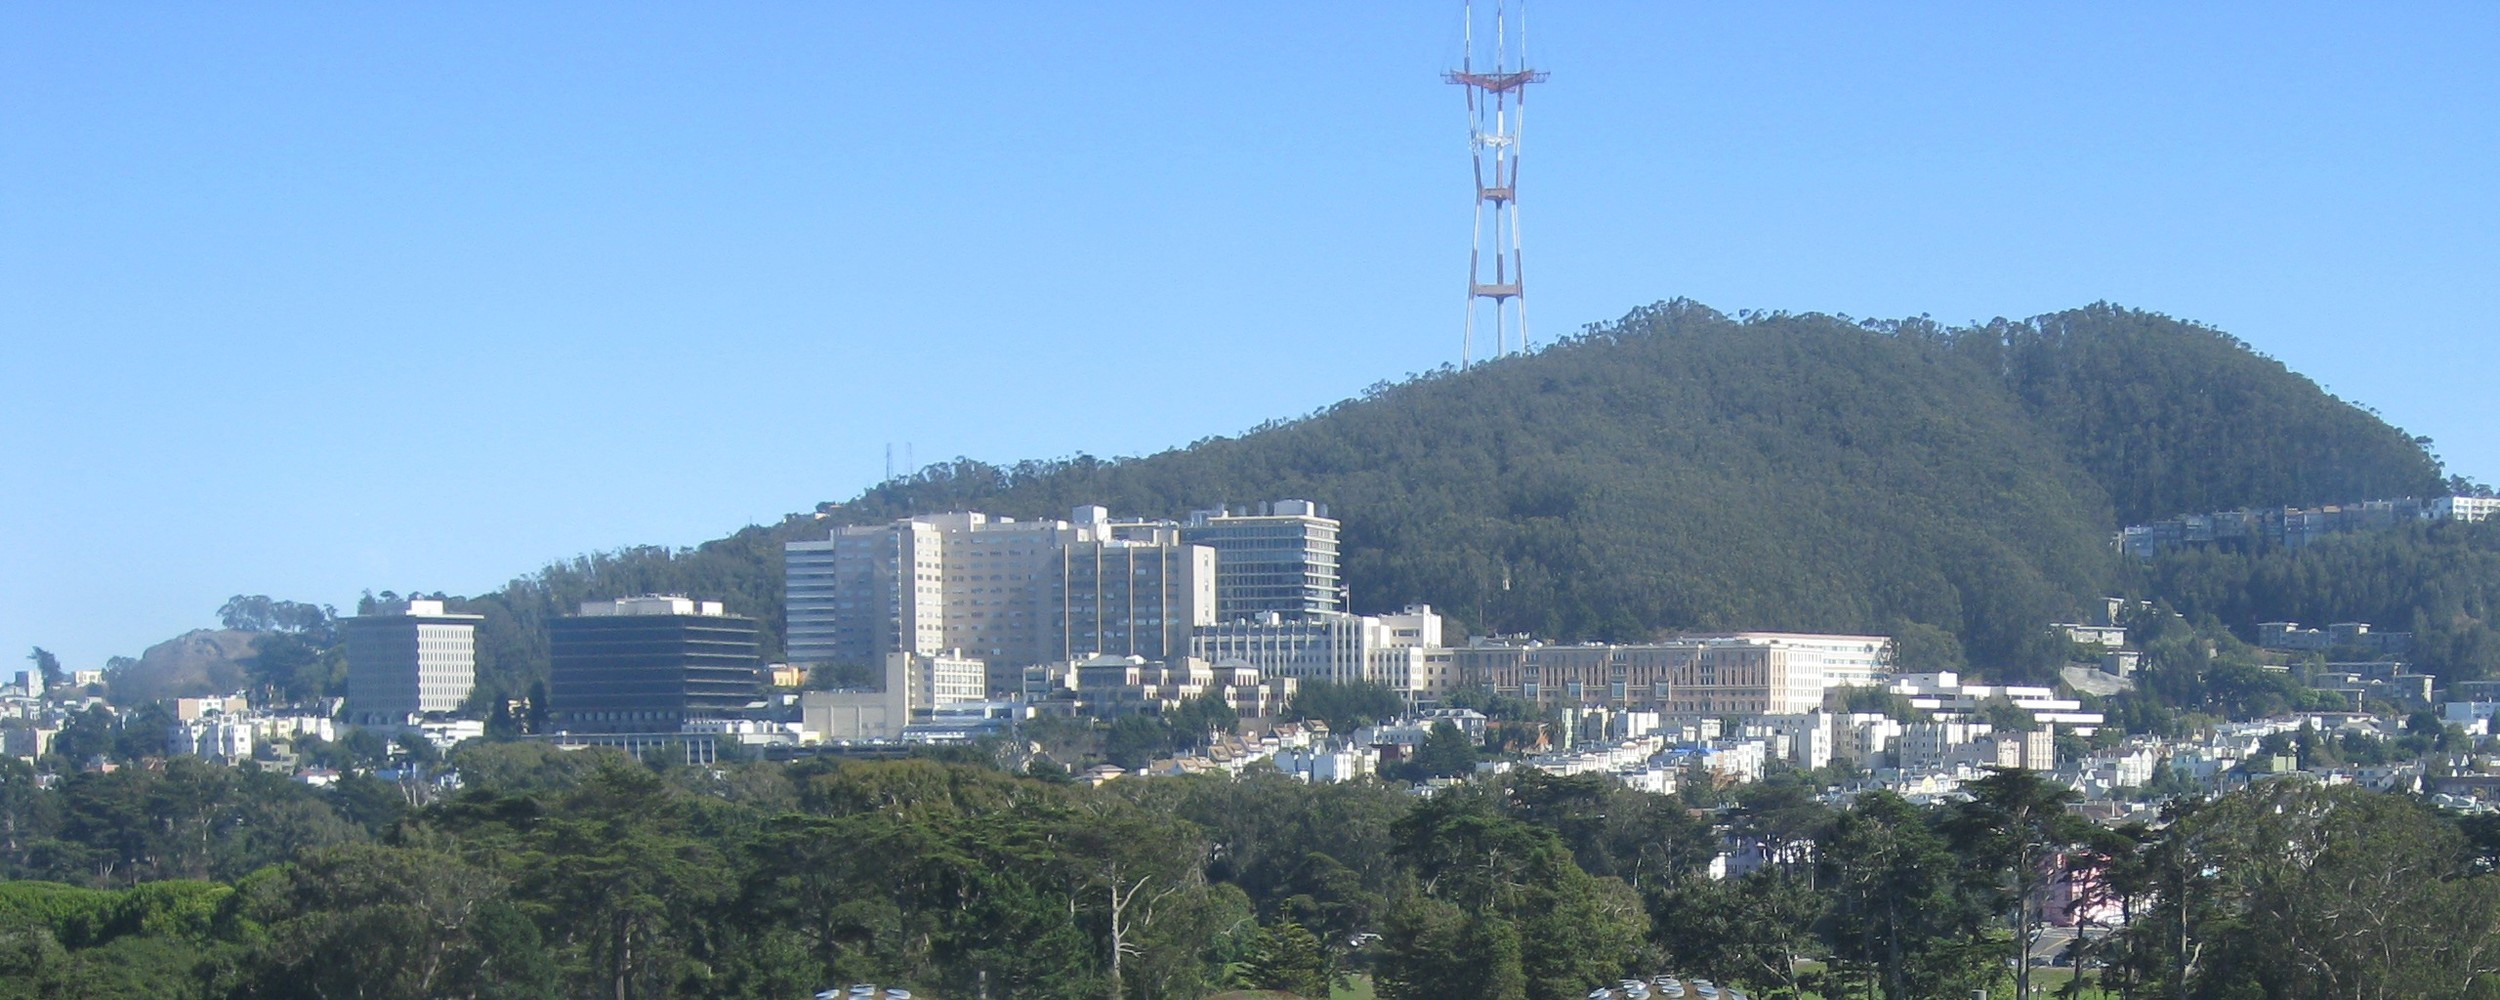 The UCSF campus at Parnassus Heights is a neighborhood landmark at the foot of Mount Sutro.